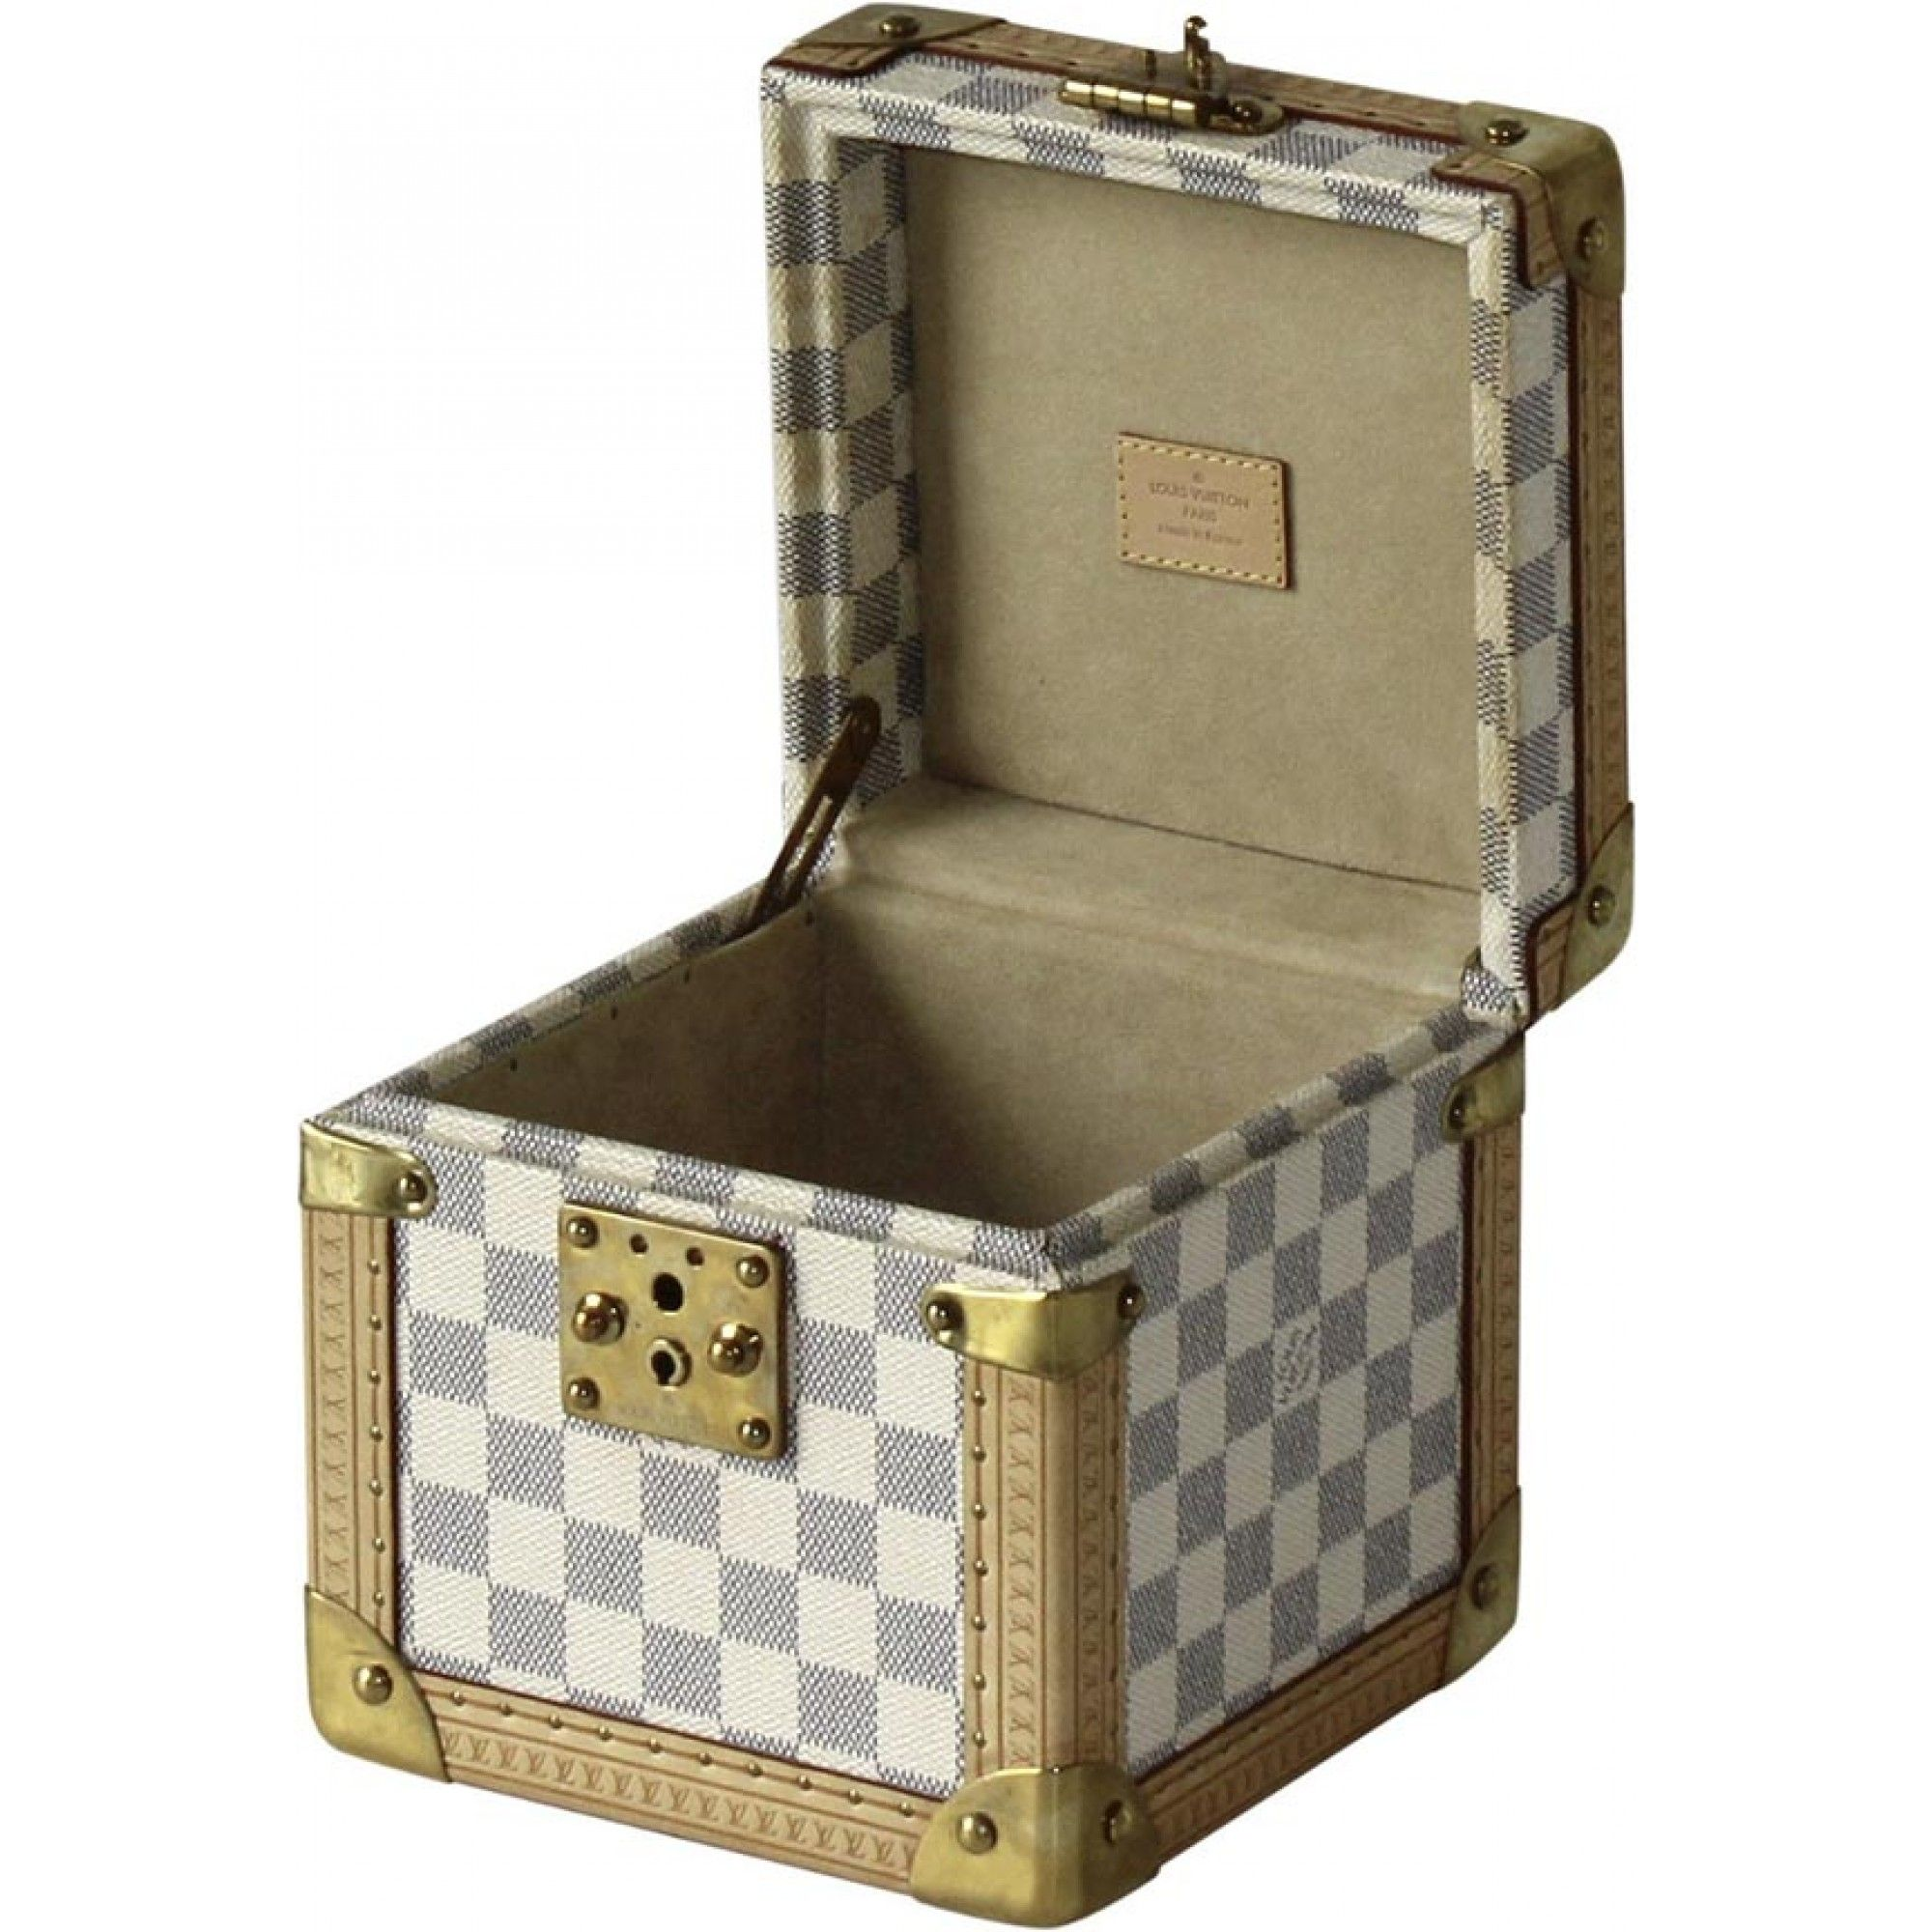 Louis Vuitton Cube Case Damier Azur GM - Louis Vuitton - Brands ...